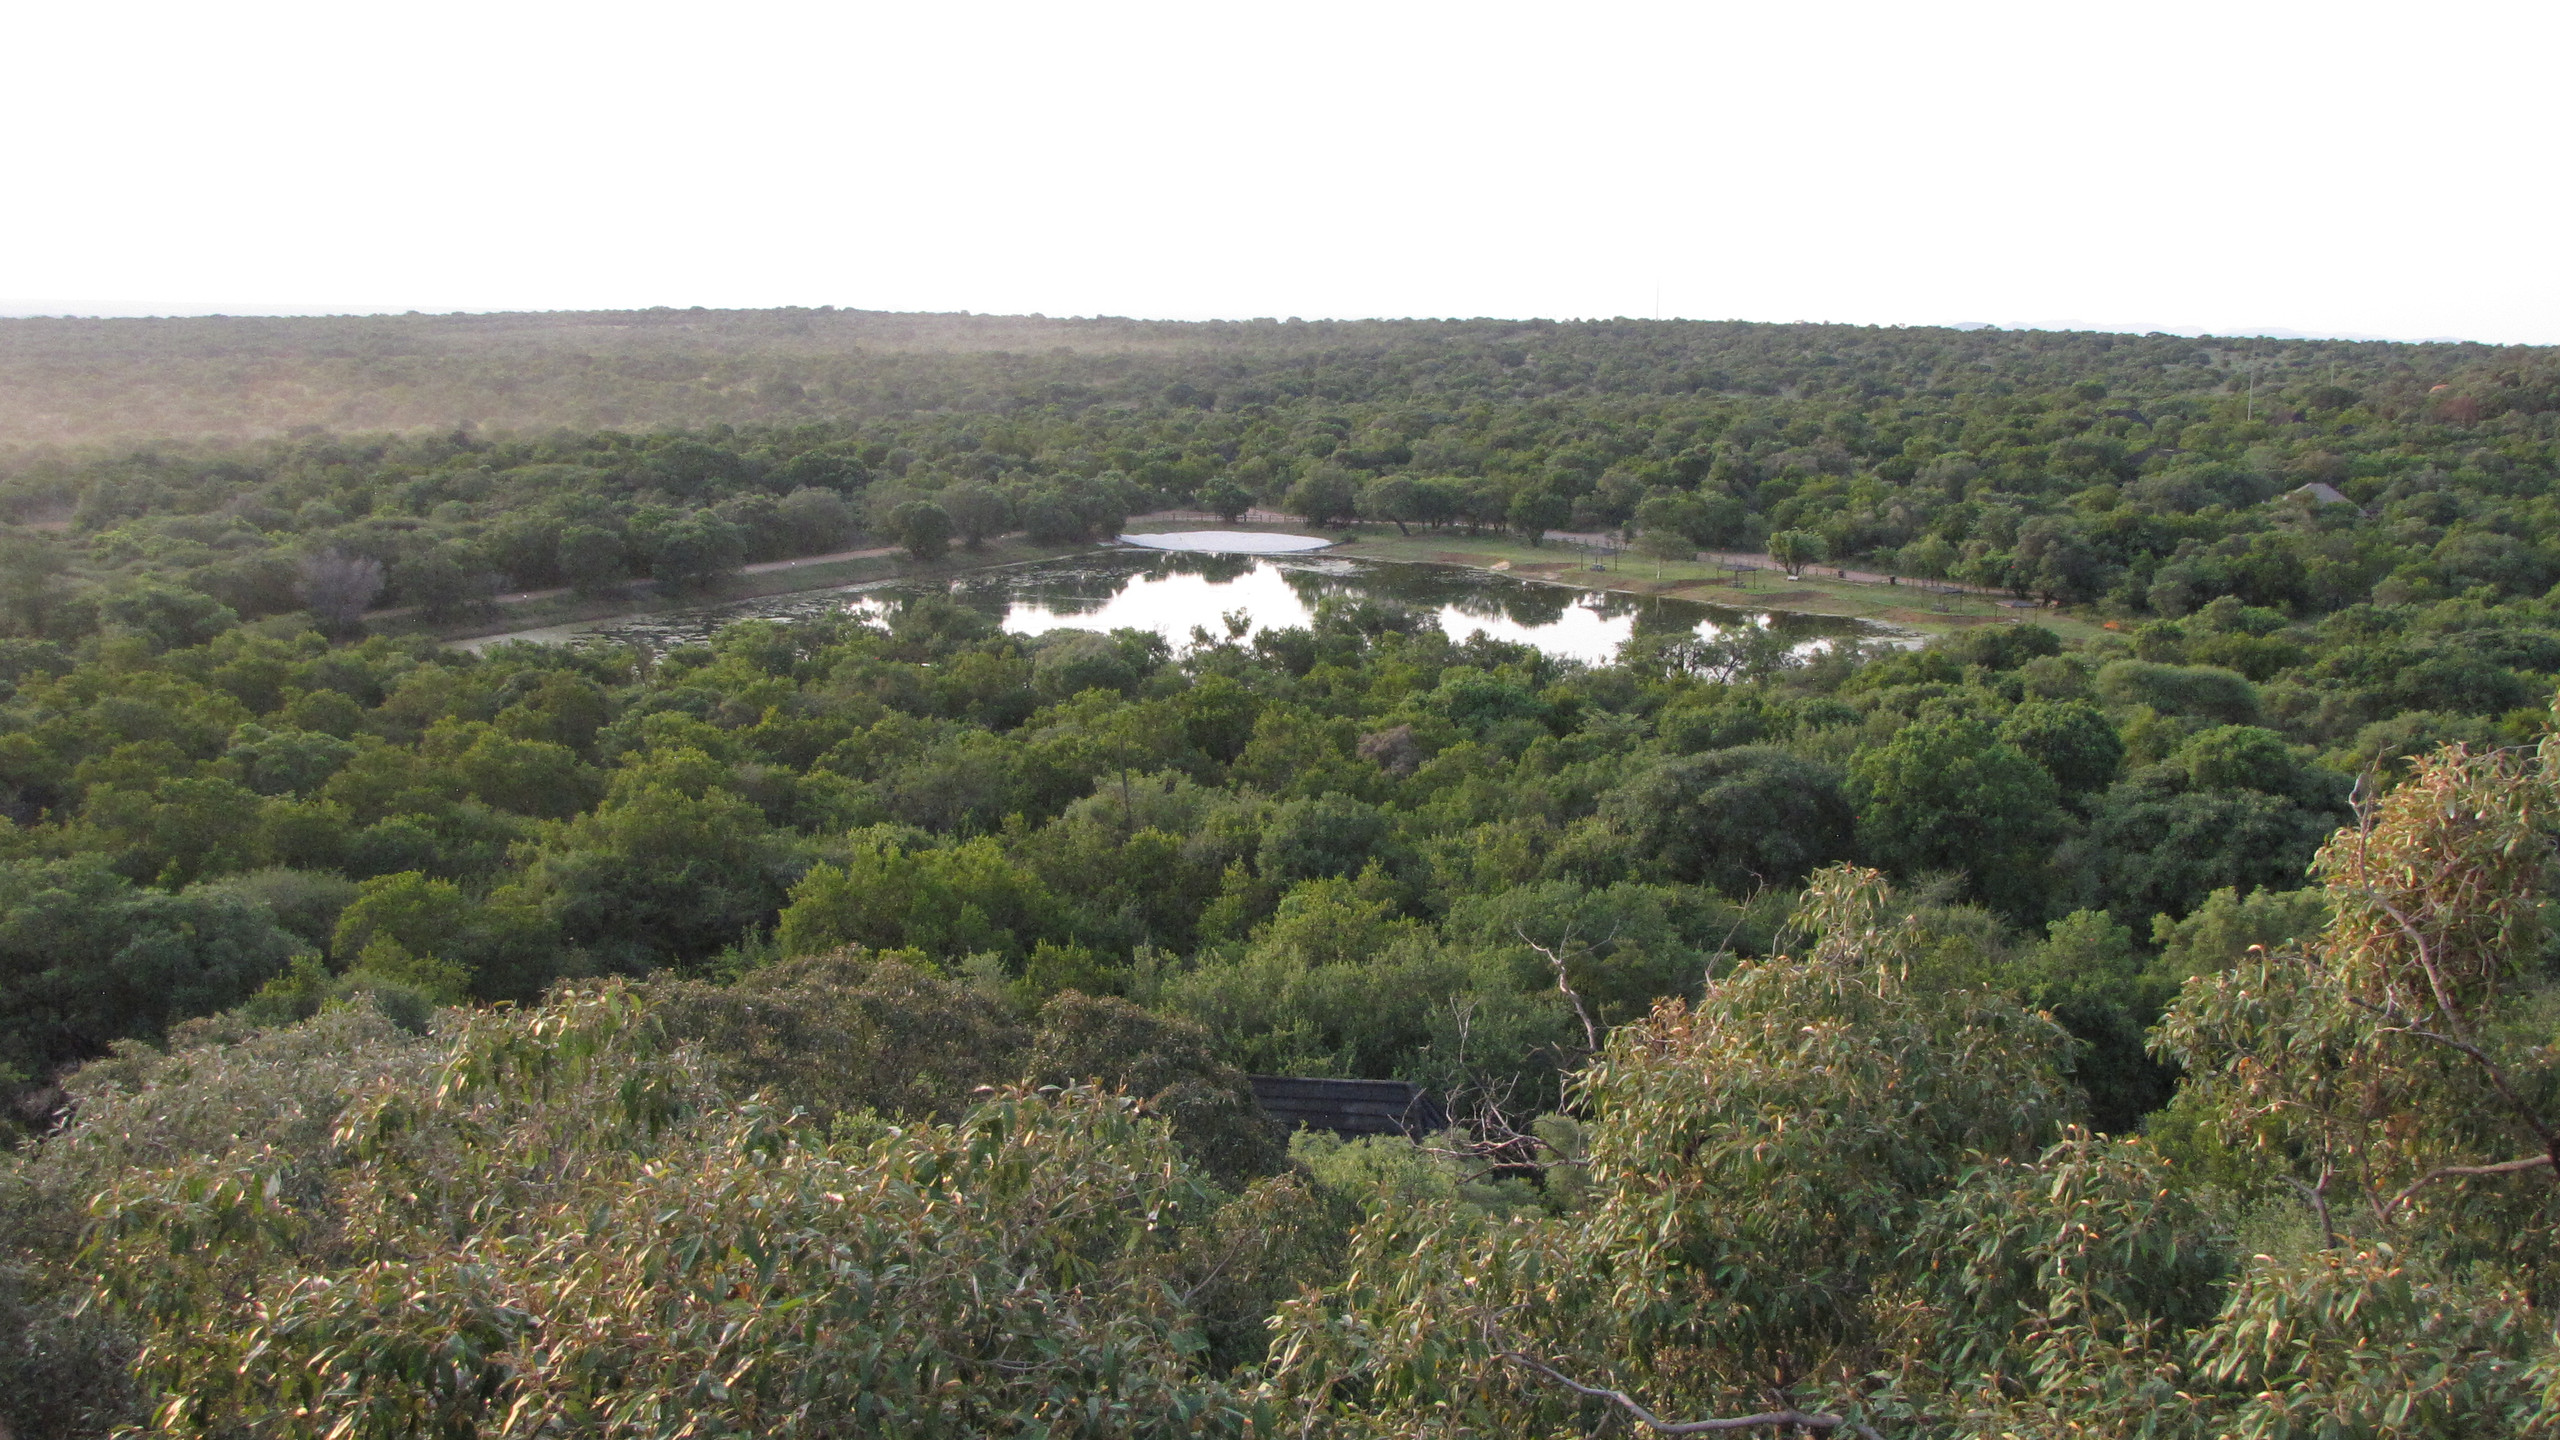 View from lookout point, North West Province